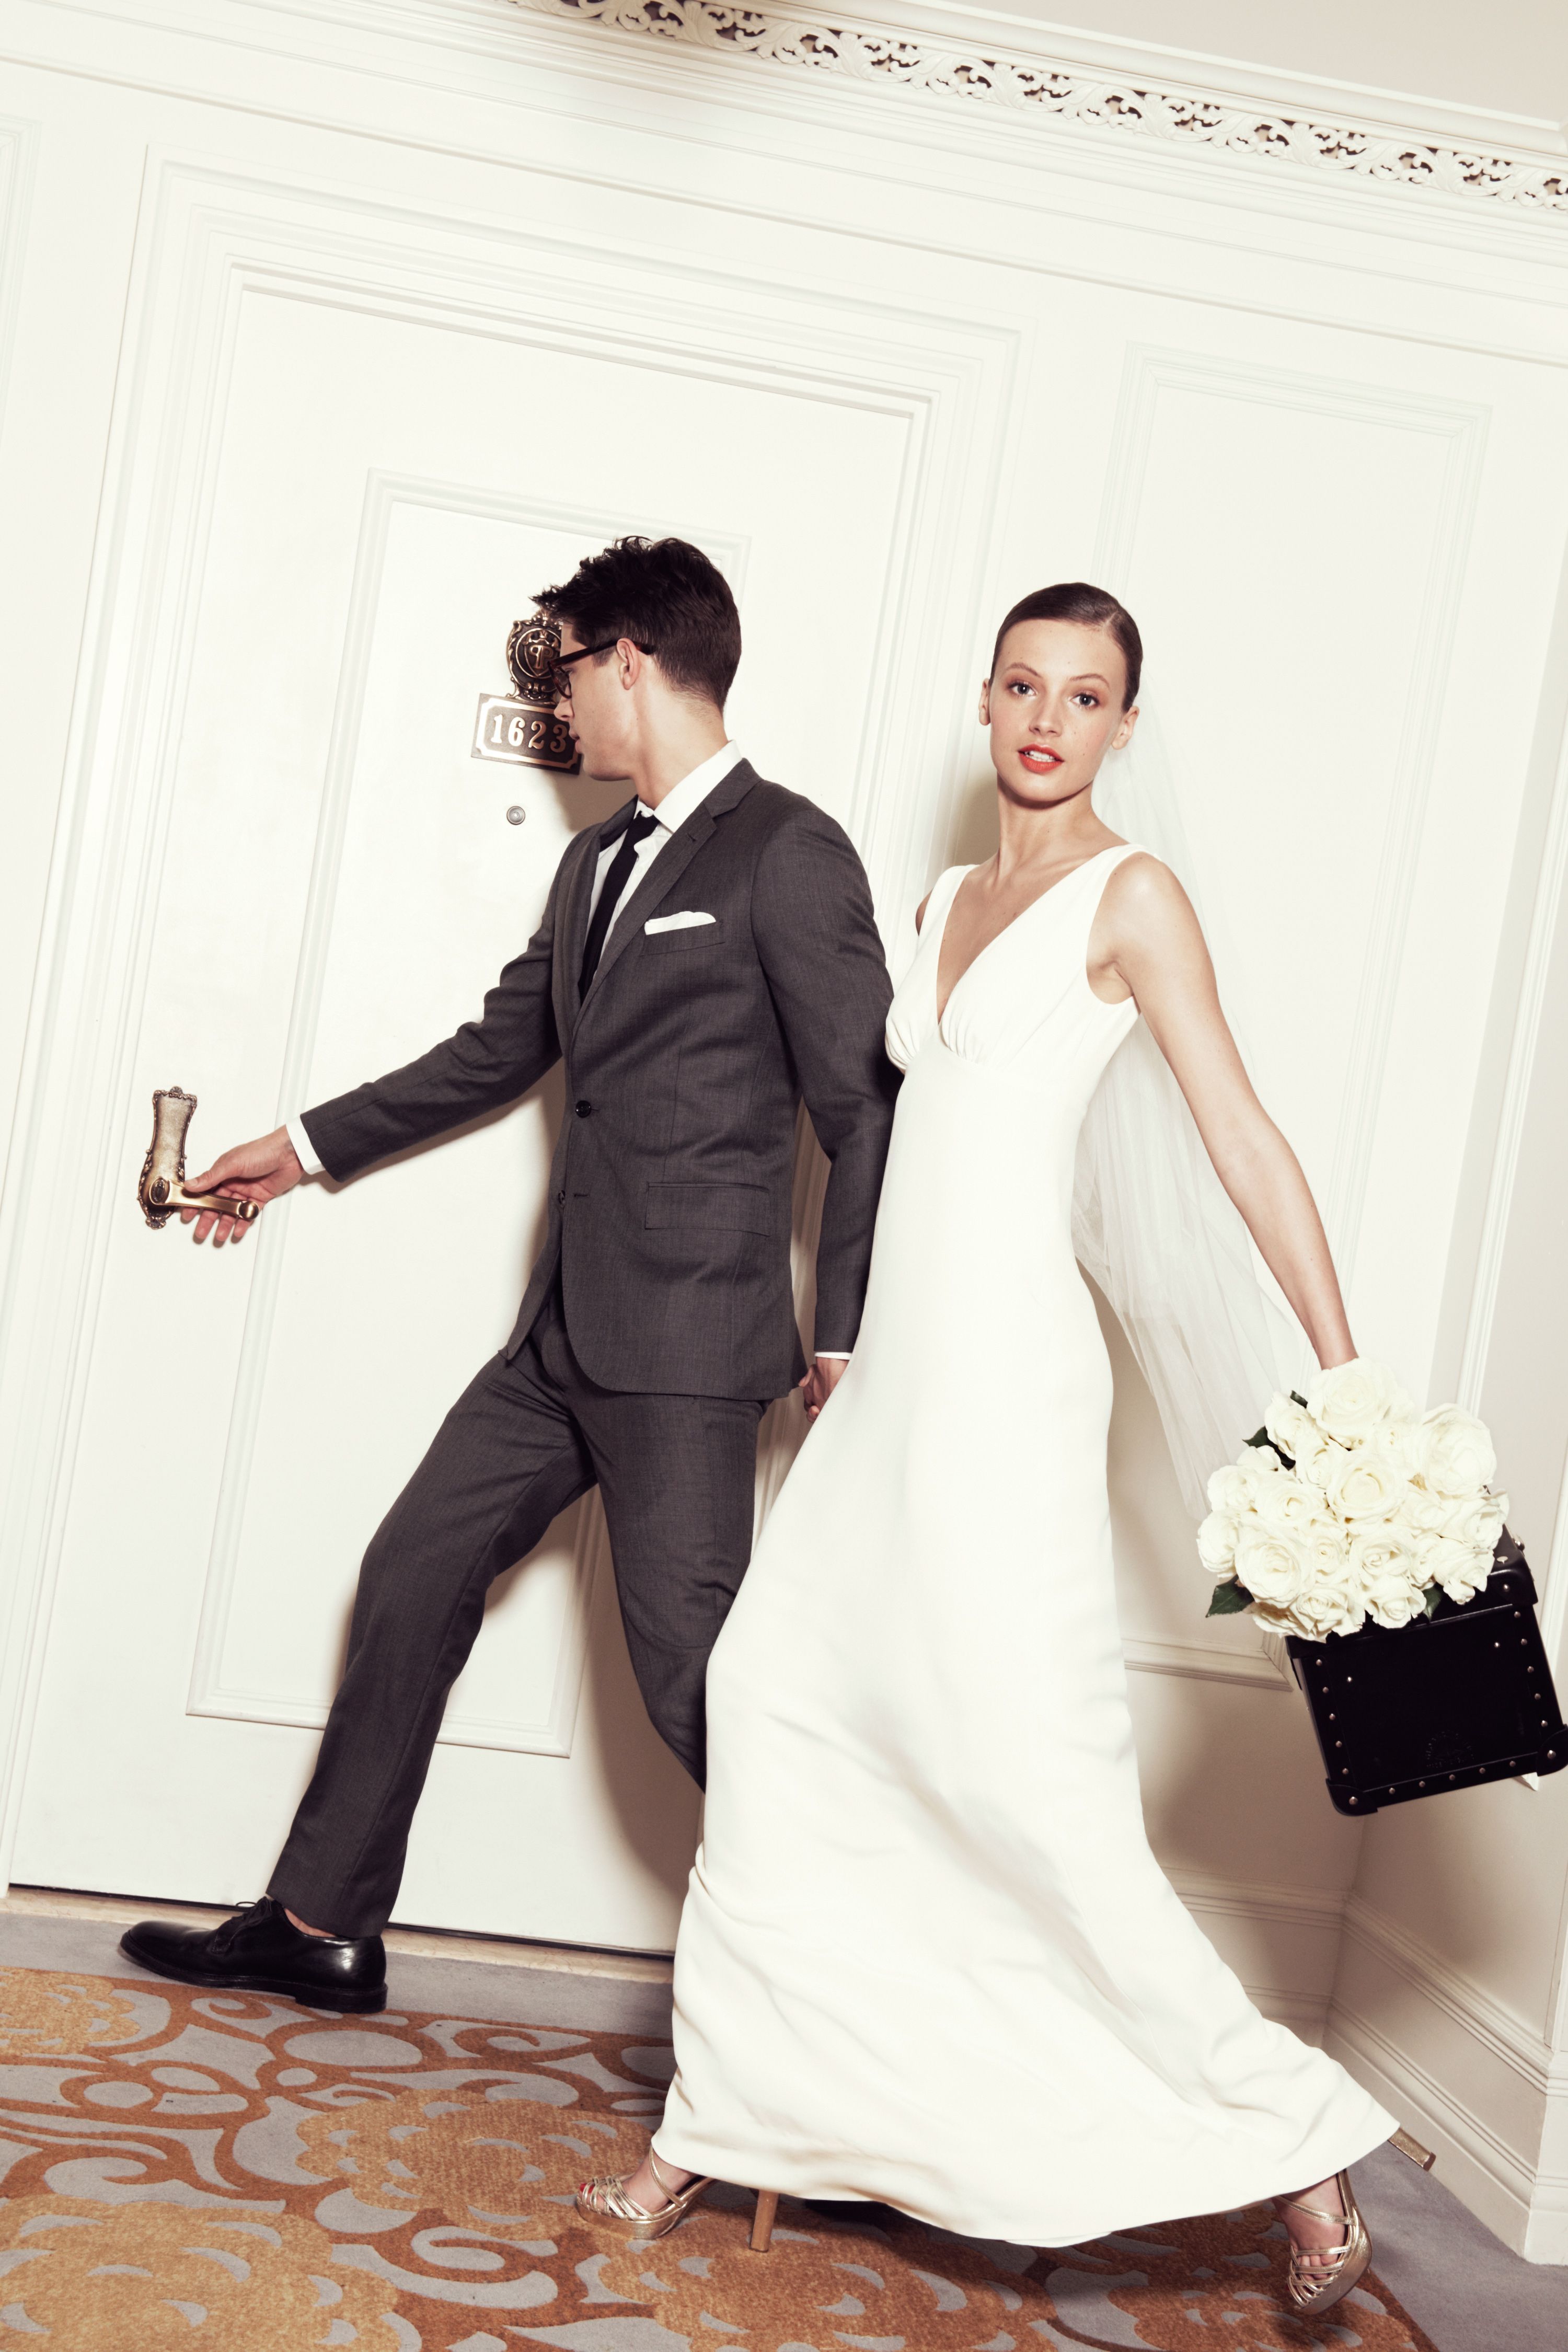 Pin By Emily Mead On Love Marriage Jcrew Wedding Wedding Dresses Wedding Dresses Simple